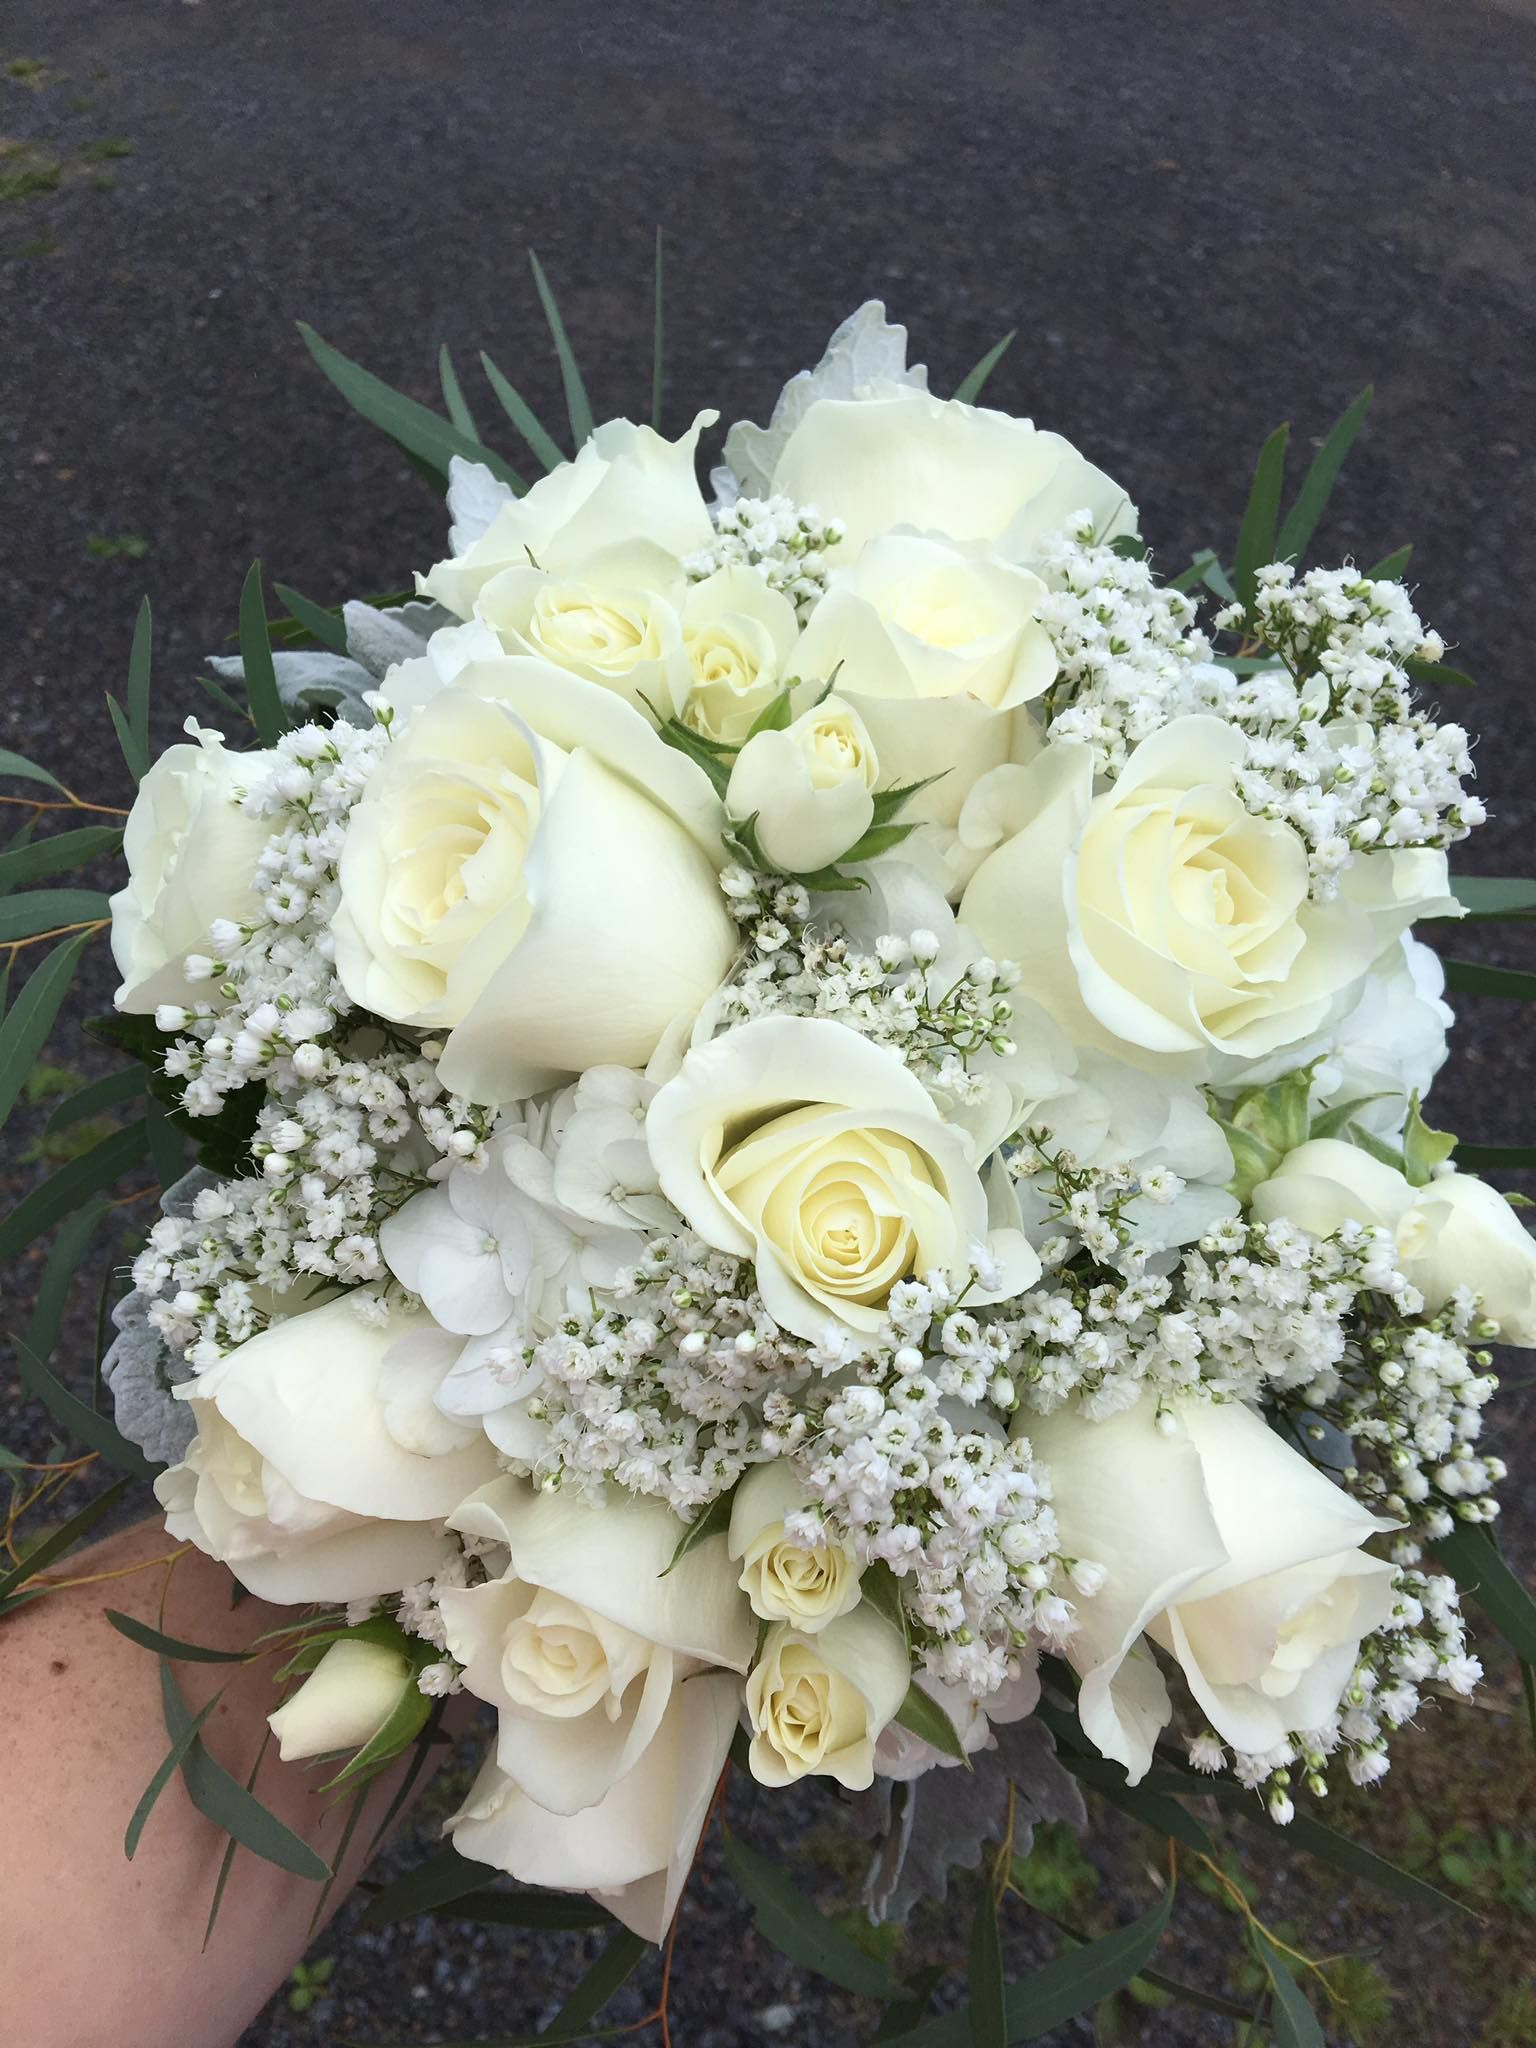 Bridal Bouquet Of White Hydrangea White Roses White Spray Roses And